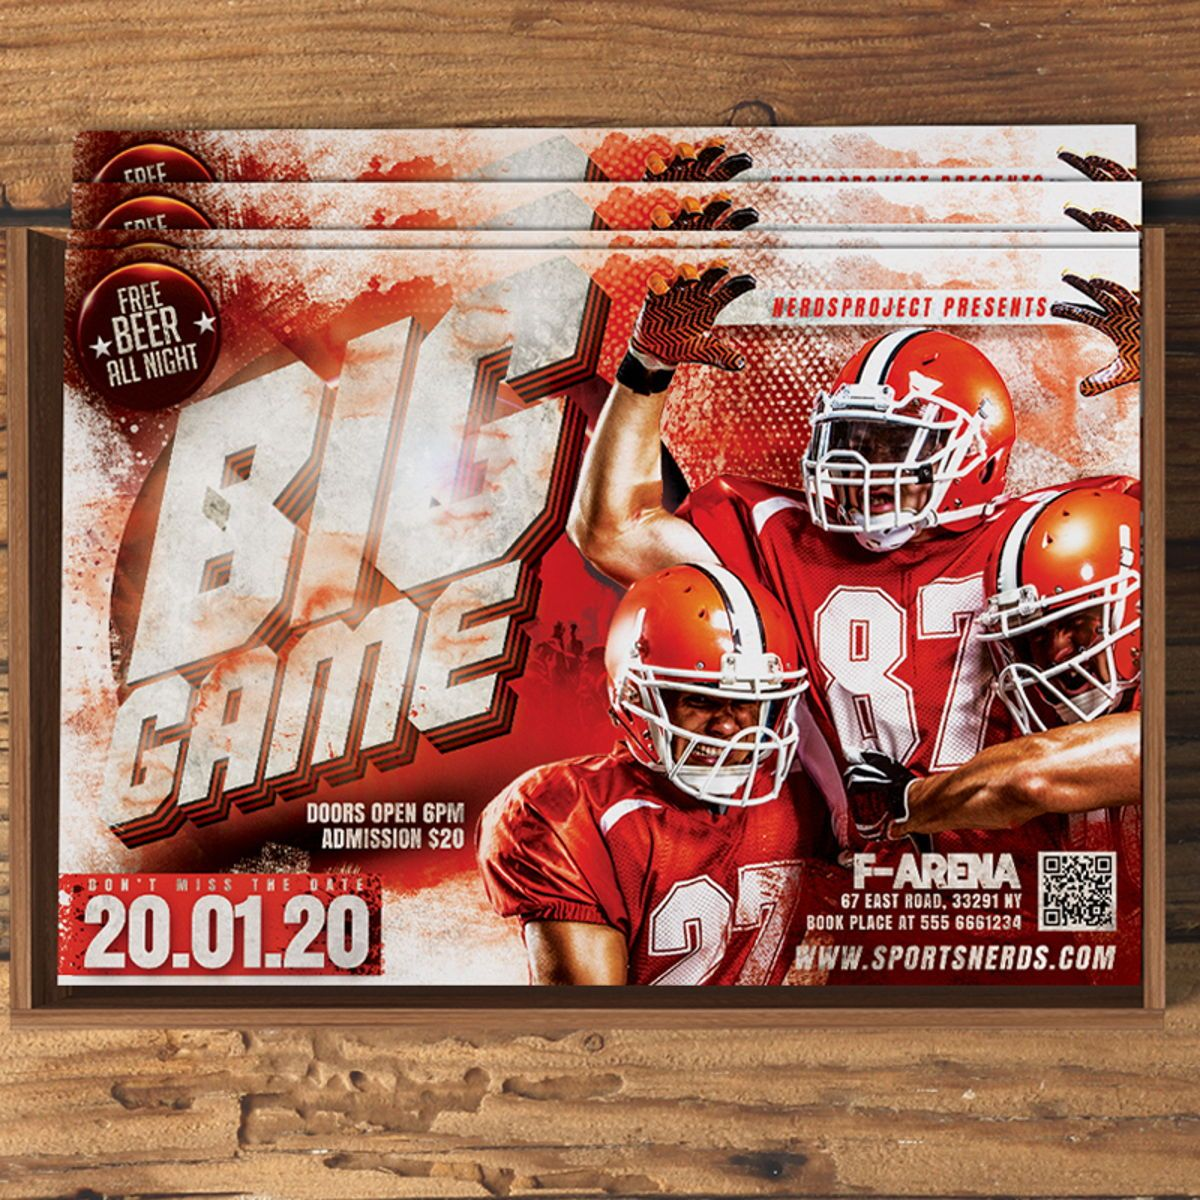 Game Day Flyer Template, Slide 3, 08581, Sports — PoweredTemplate.com